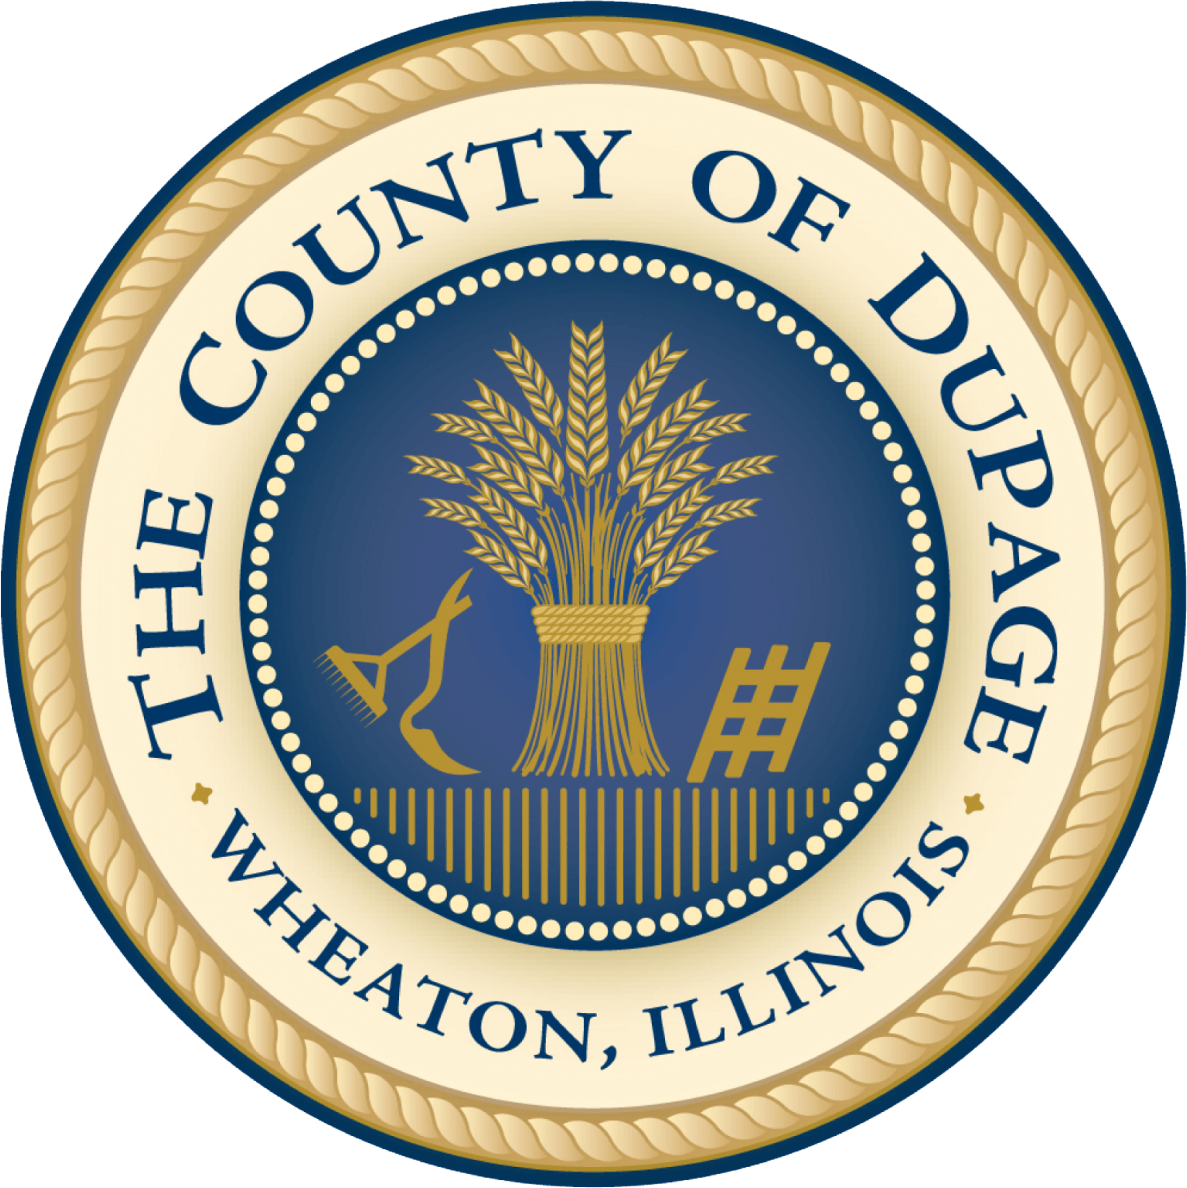 The County of DuPage Wheaton, Illinois